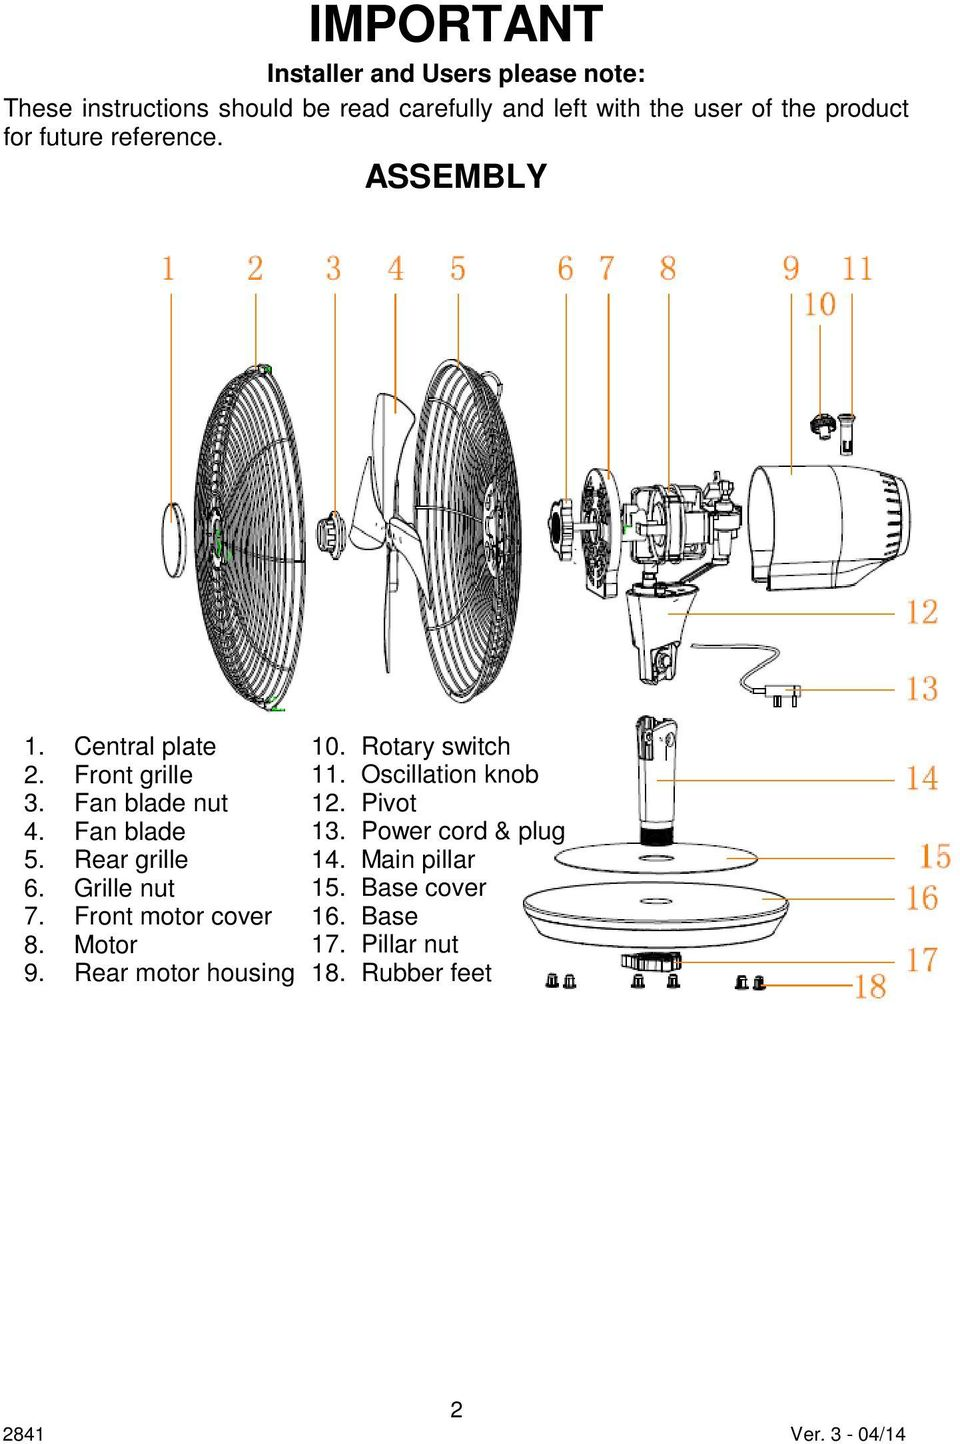 Rear grille 6. Grille nut 7. Front motor cover 8. Motor 9. Rear motor housing 10. Rotary switch 11.